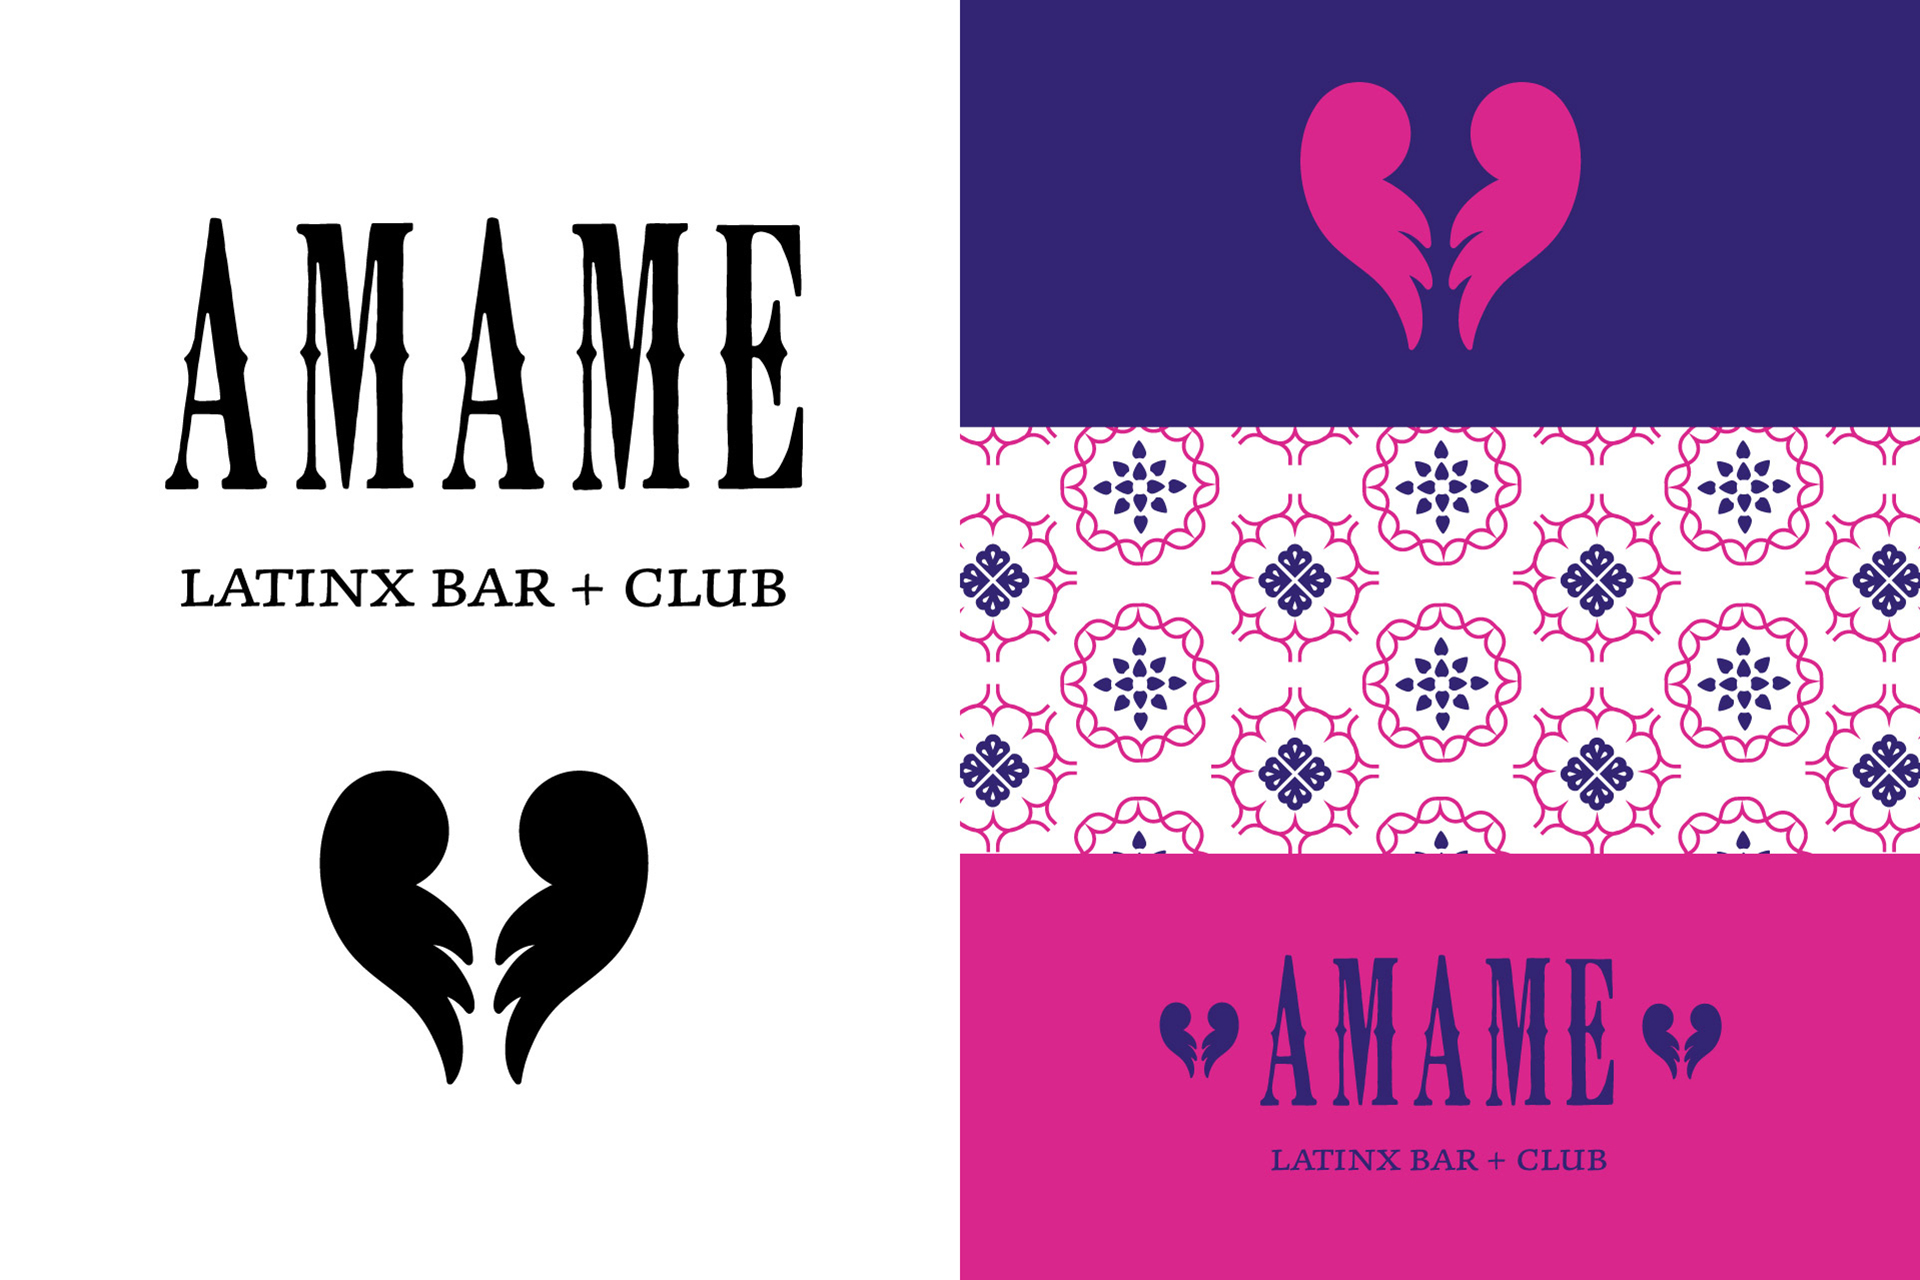 Various Amame logo uses and pattern